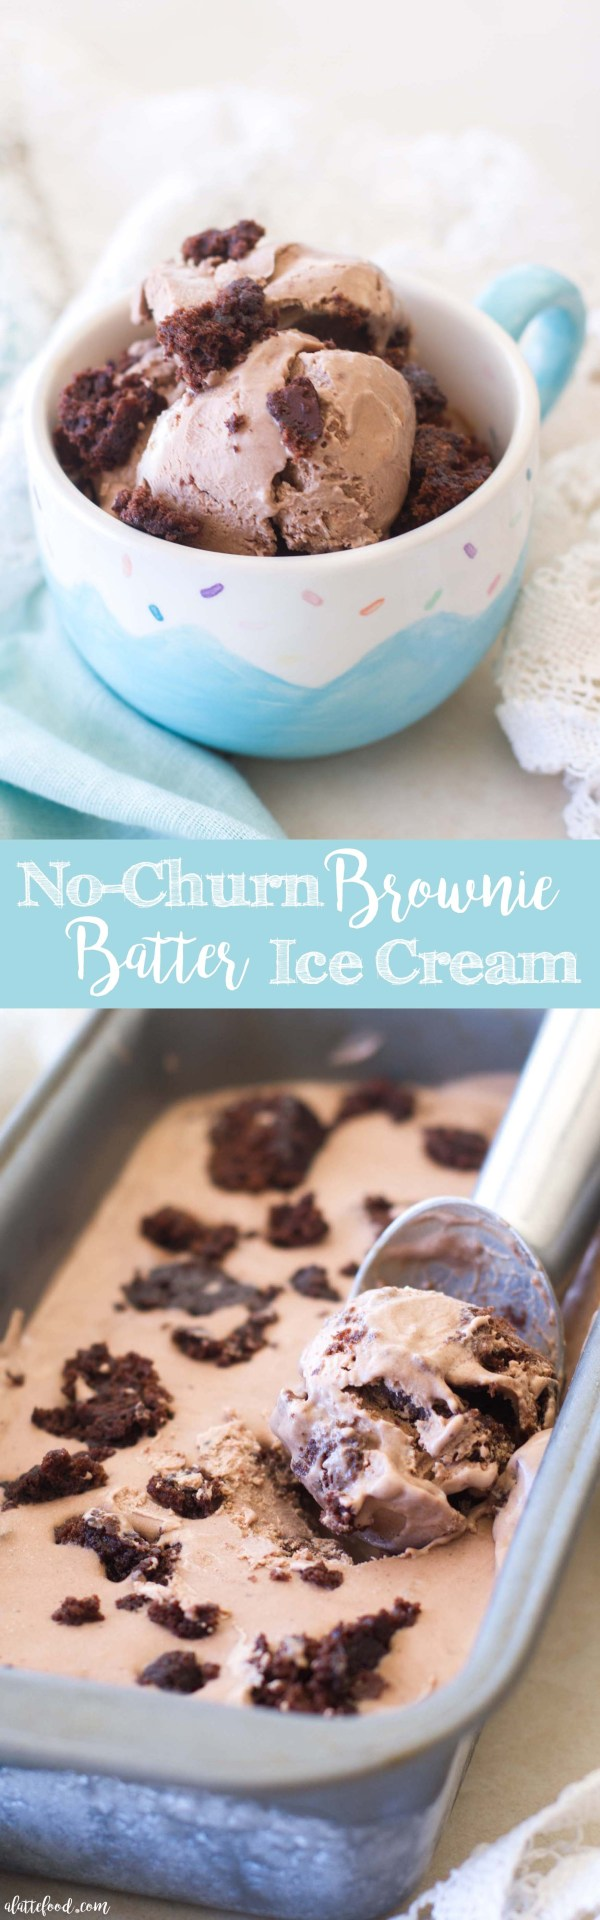 This easy no-churn brownie batter ice cream is made with only 4 ingredients (5 ingredients if you want to add in brownie bites!) and tastes like chocolate covered brownie dreams.